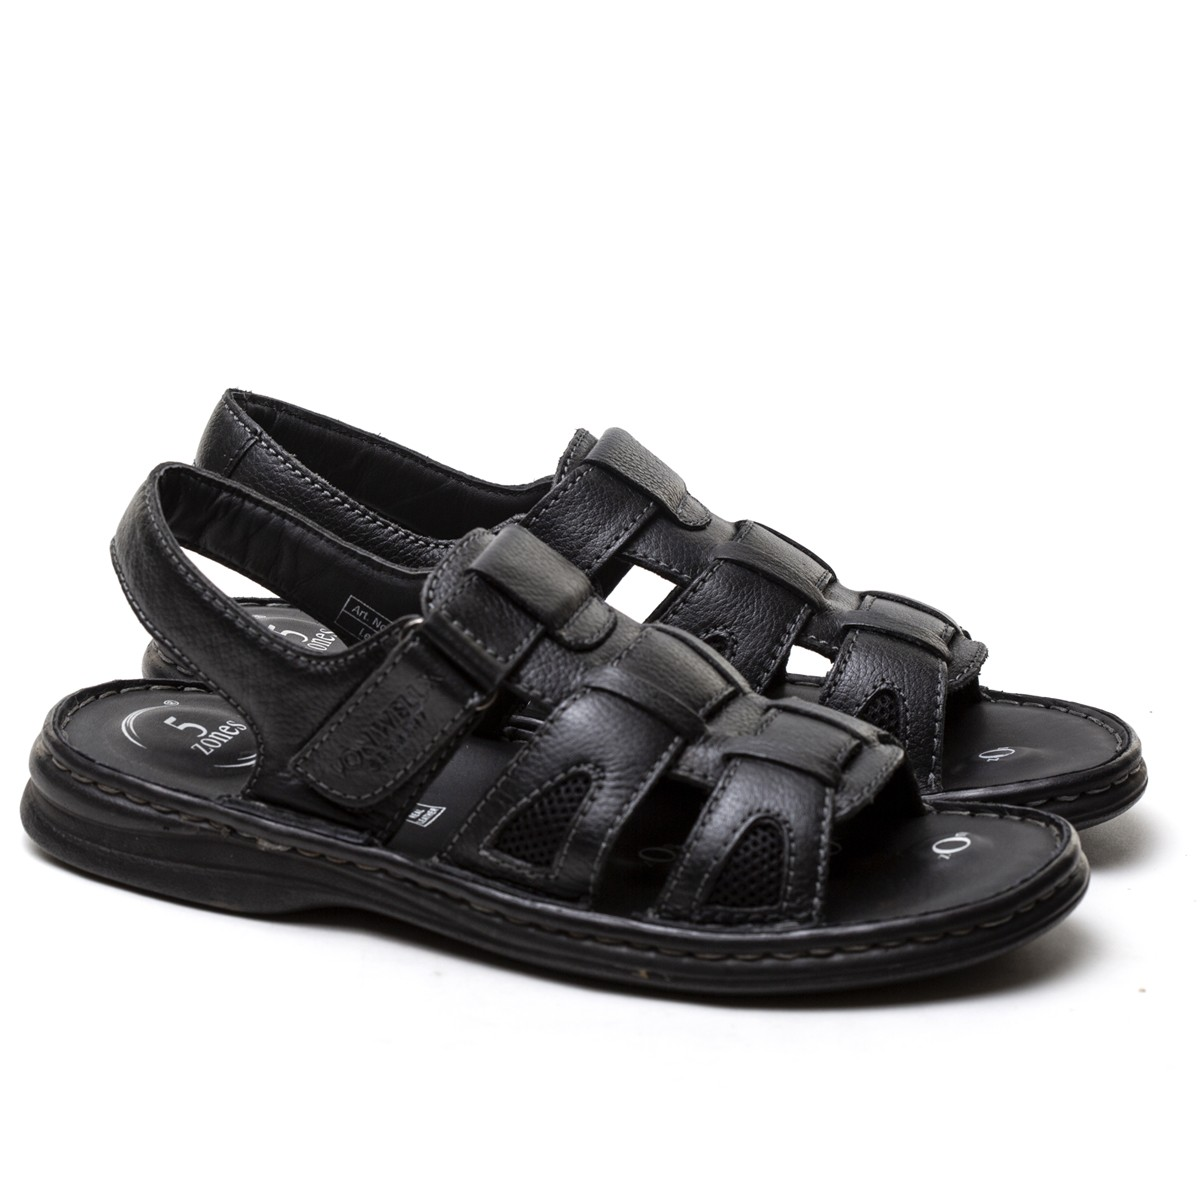 Buy VON WELLX GERMANY COMFORT RHYS BLACK SANDALS In Delhi